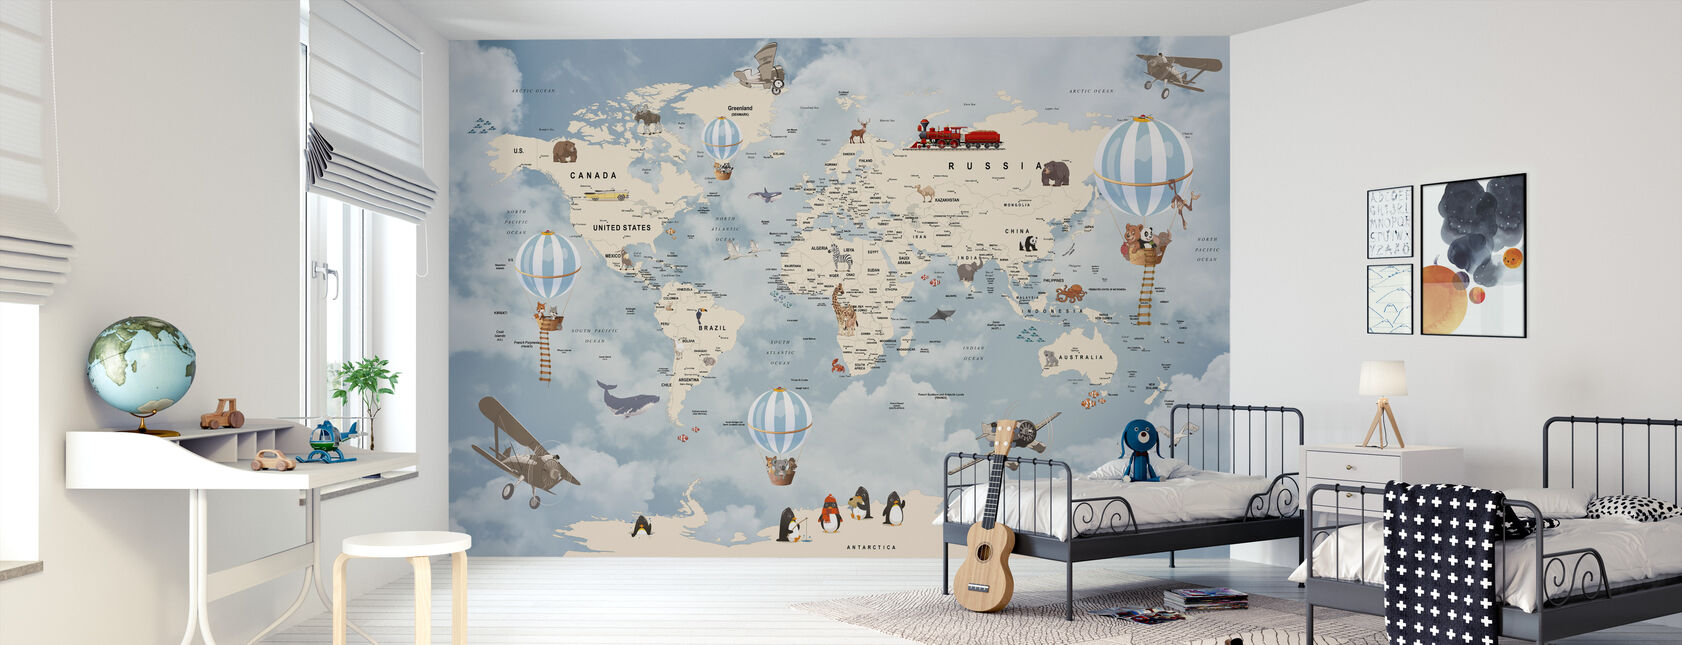 Animals Home Map - Wallpaper - Kids Room